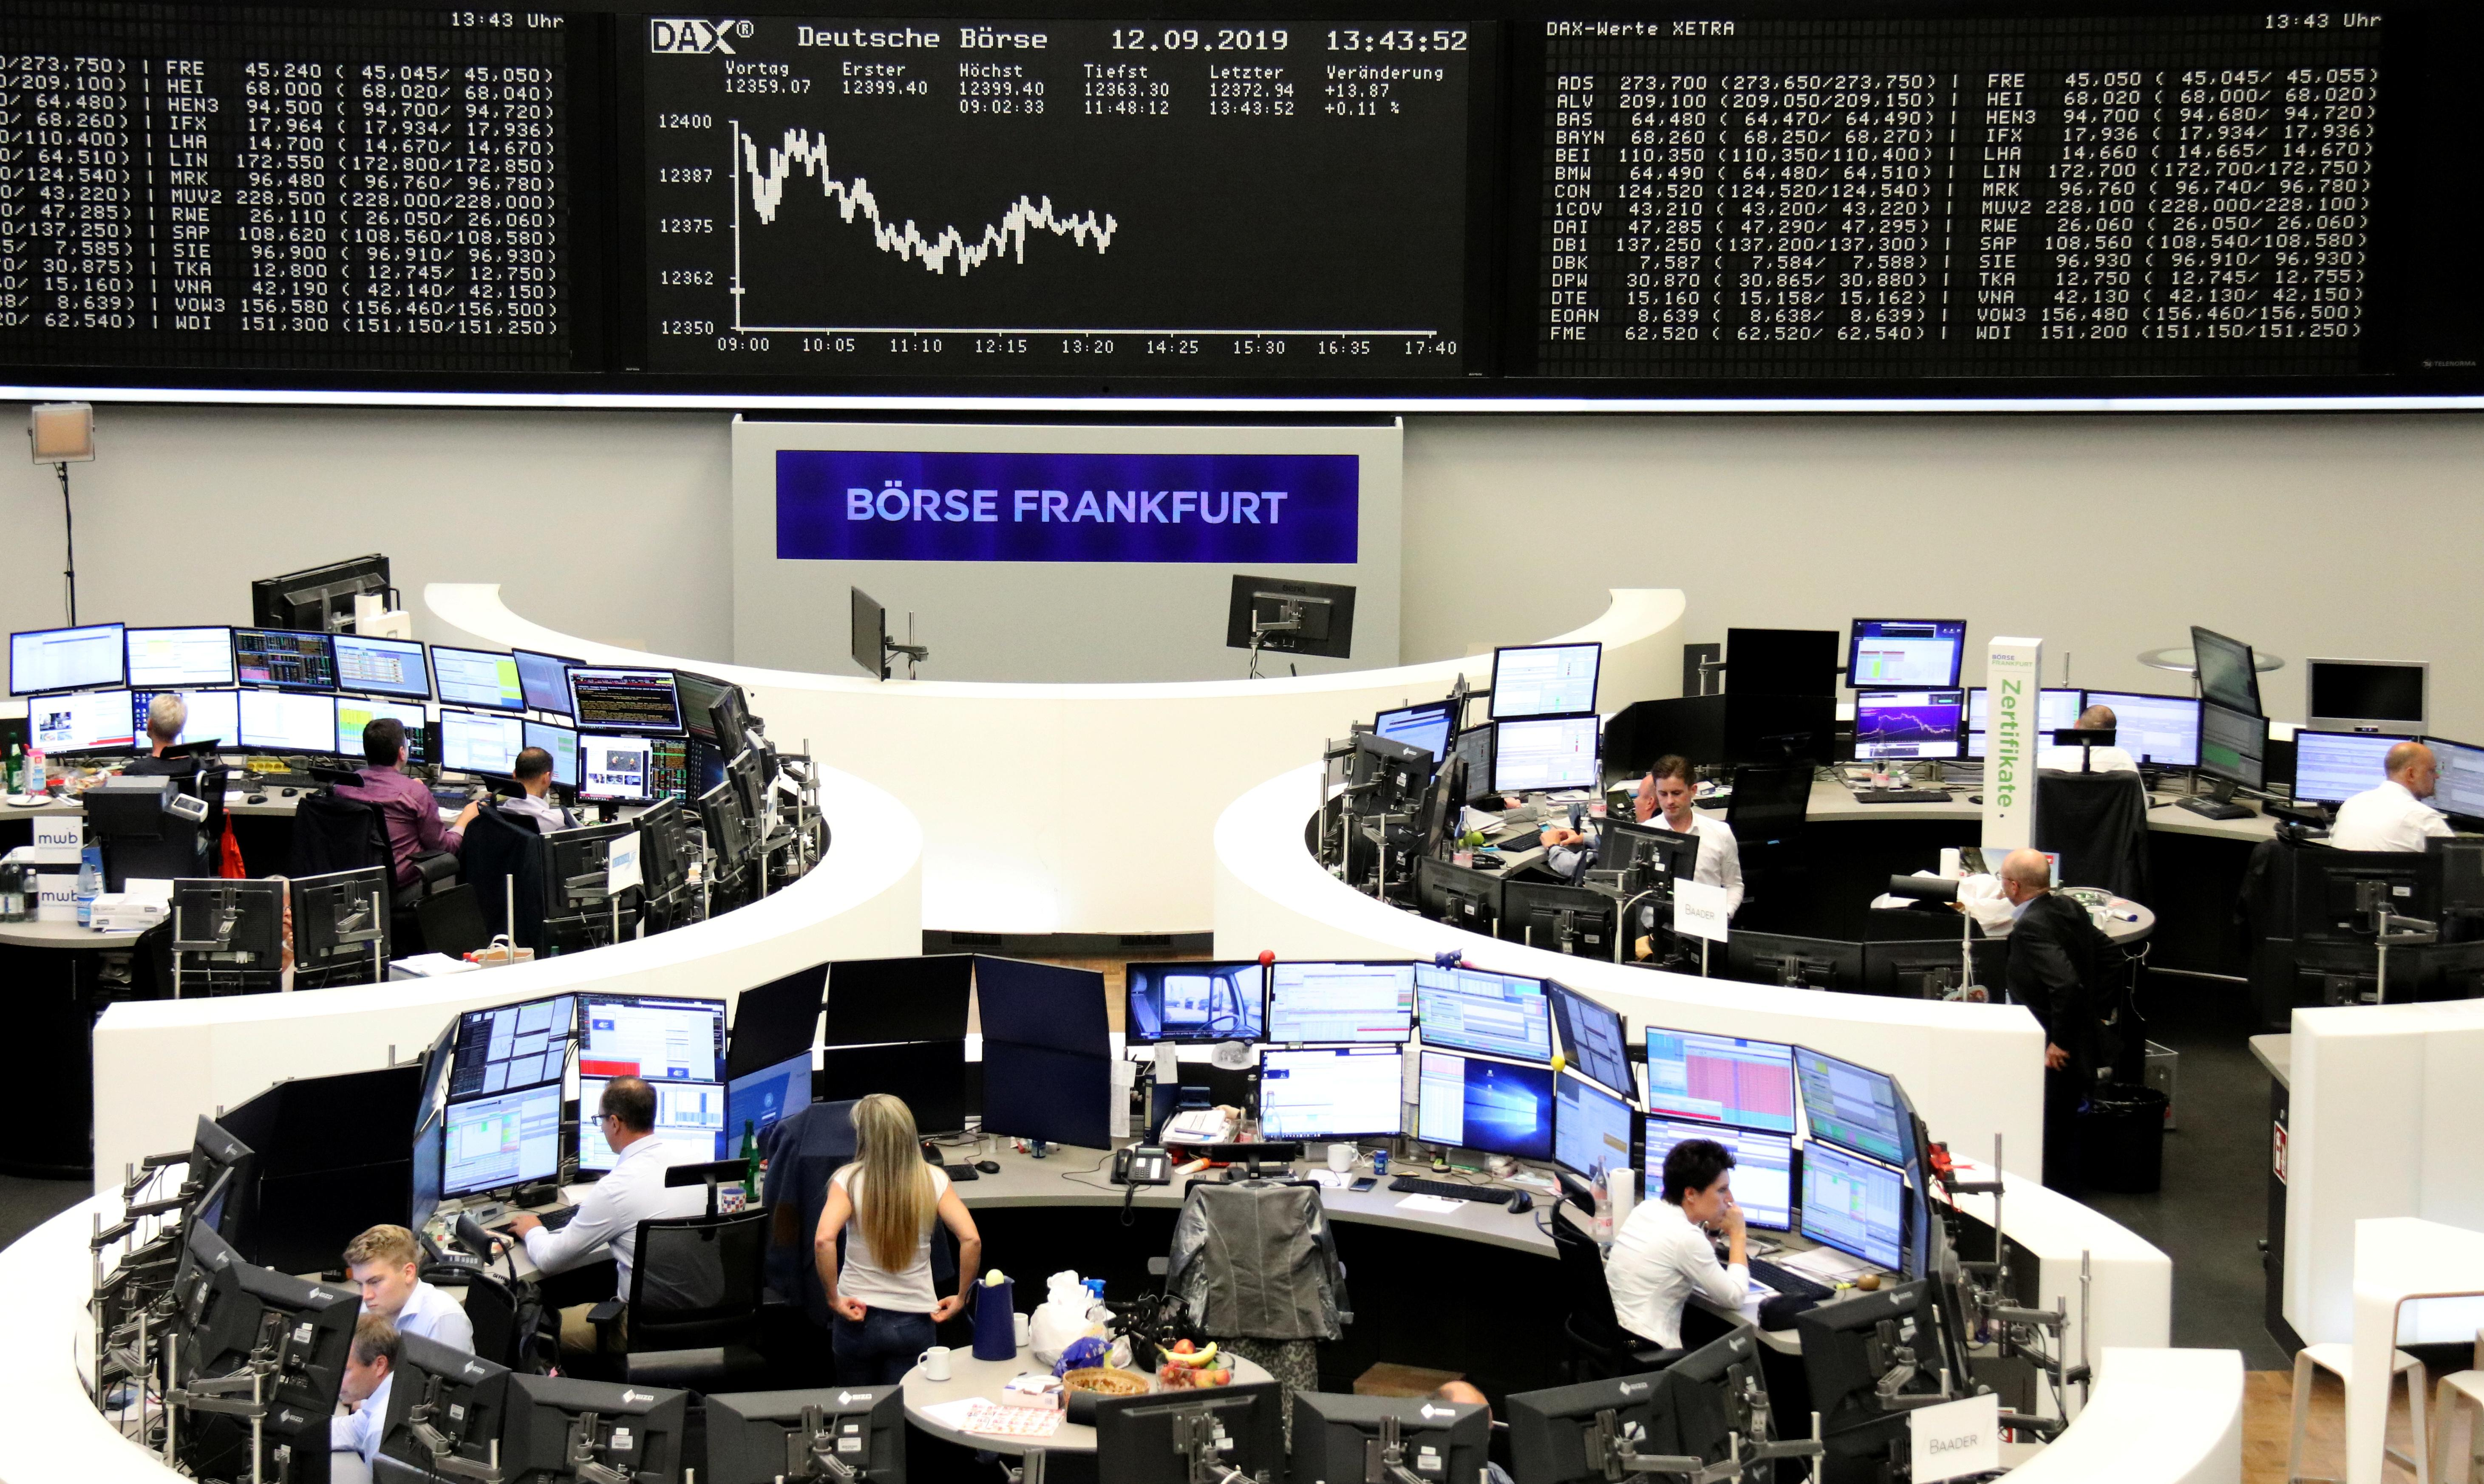 European stocks suffer from Saudi attacks, but oil firms soar